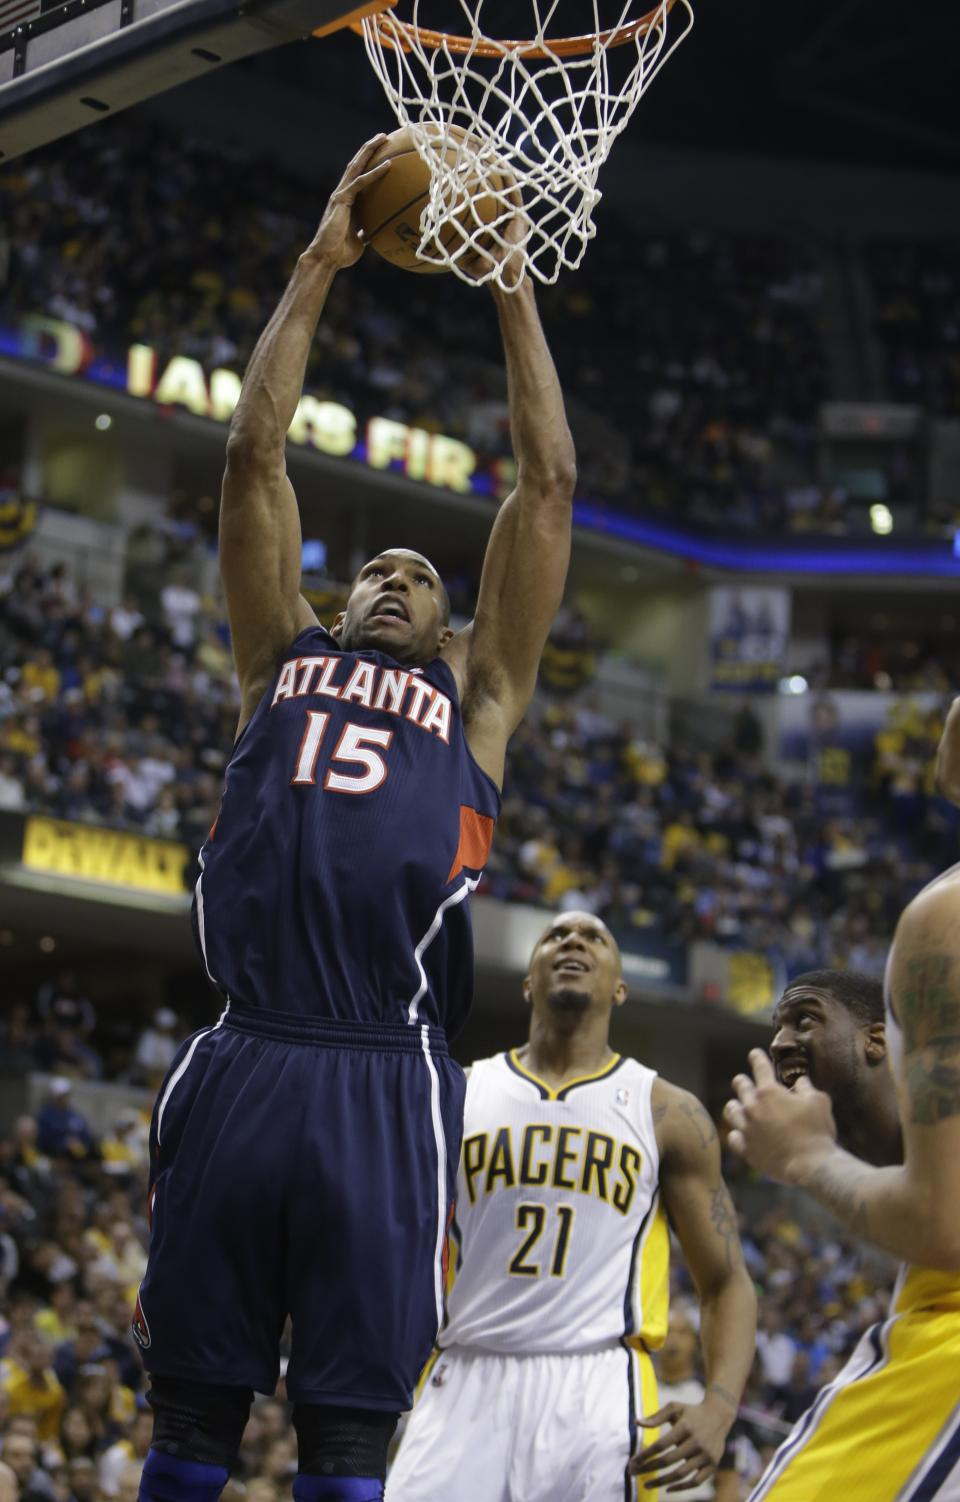 Atlanta Hawks' Al Horford (15) shoots against Indiana Pacers' David West during the first half of Game 1 in the first round of the NBA basketball playoffs on Sunday, April 21, 2013, in Indianapolis. (AP Photo/Darron Cummings)